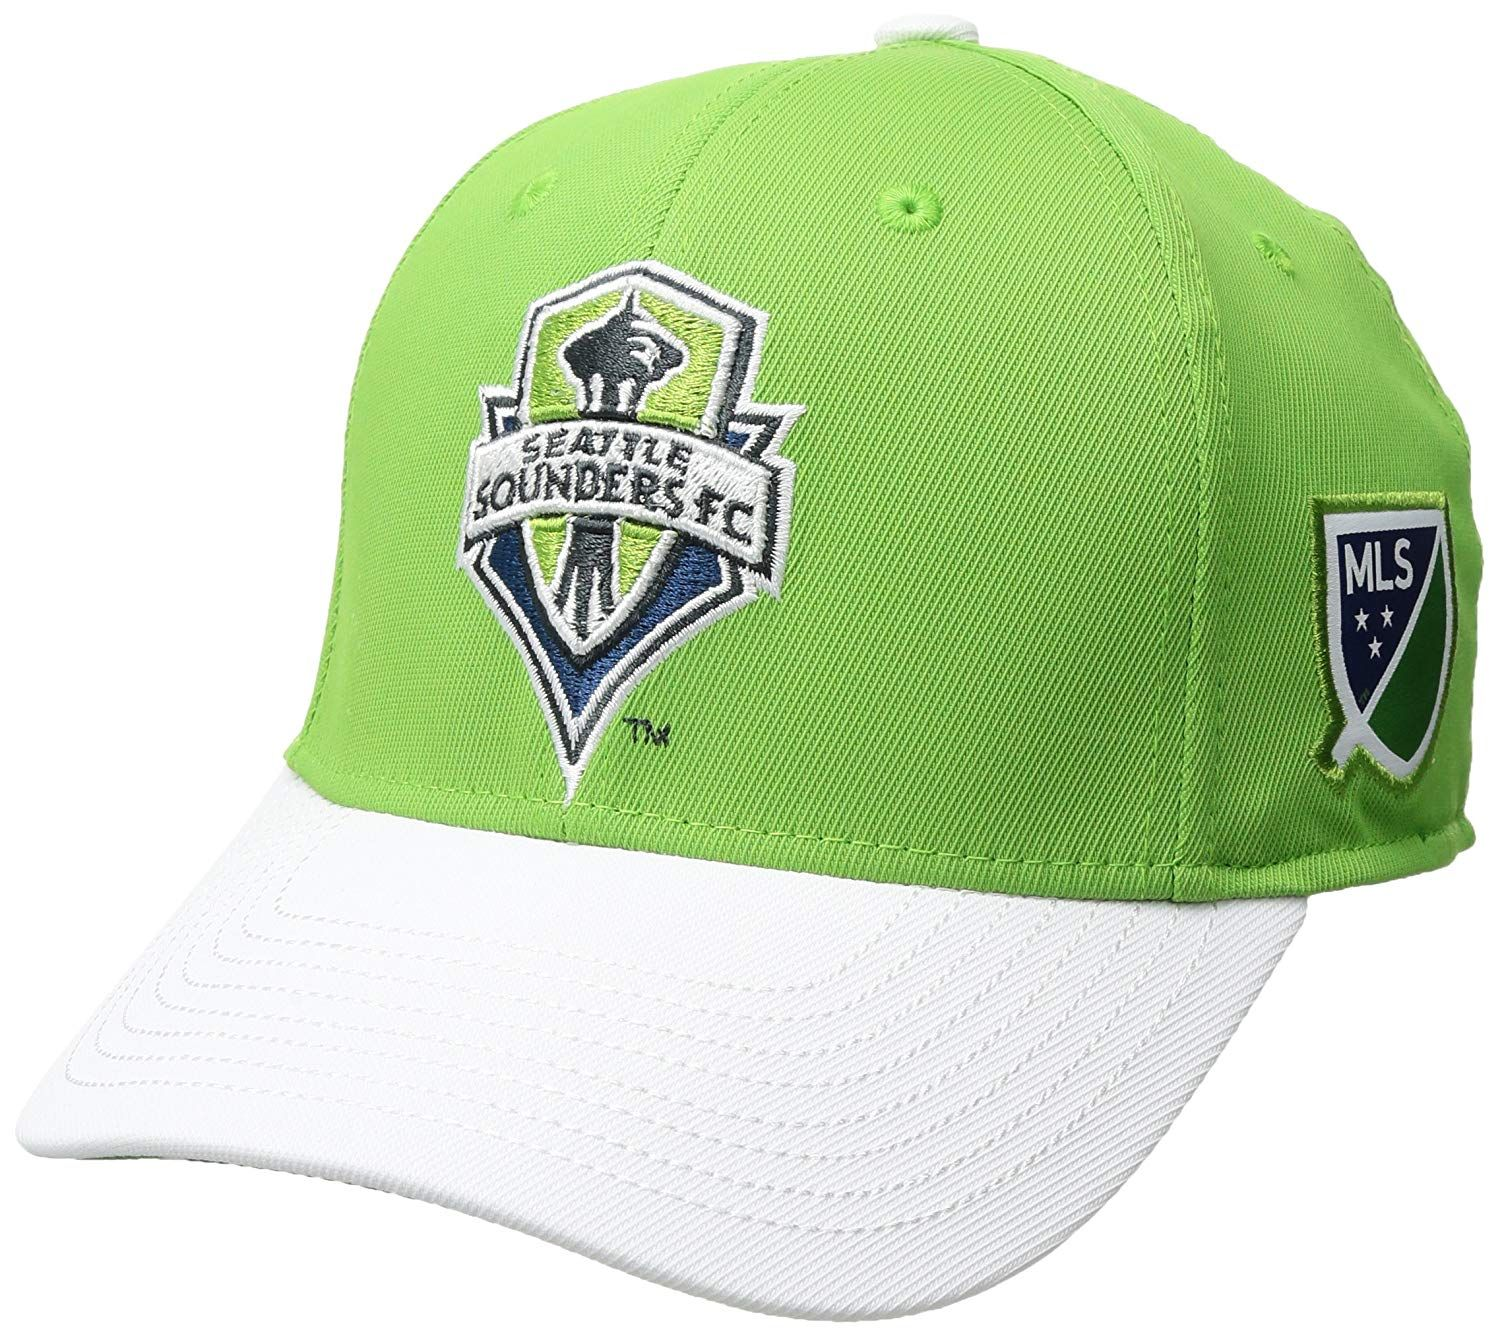 7774cace63c MLS Seattle Sounders FC Adult Champ Structured Flex with Embroidered ...